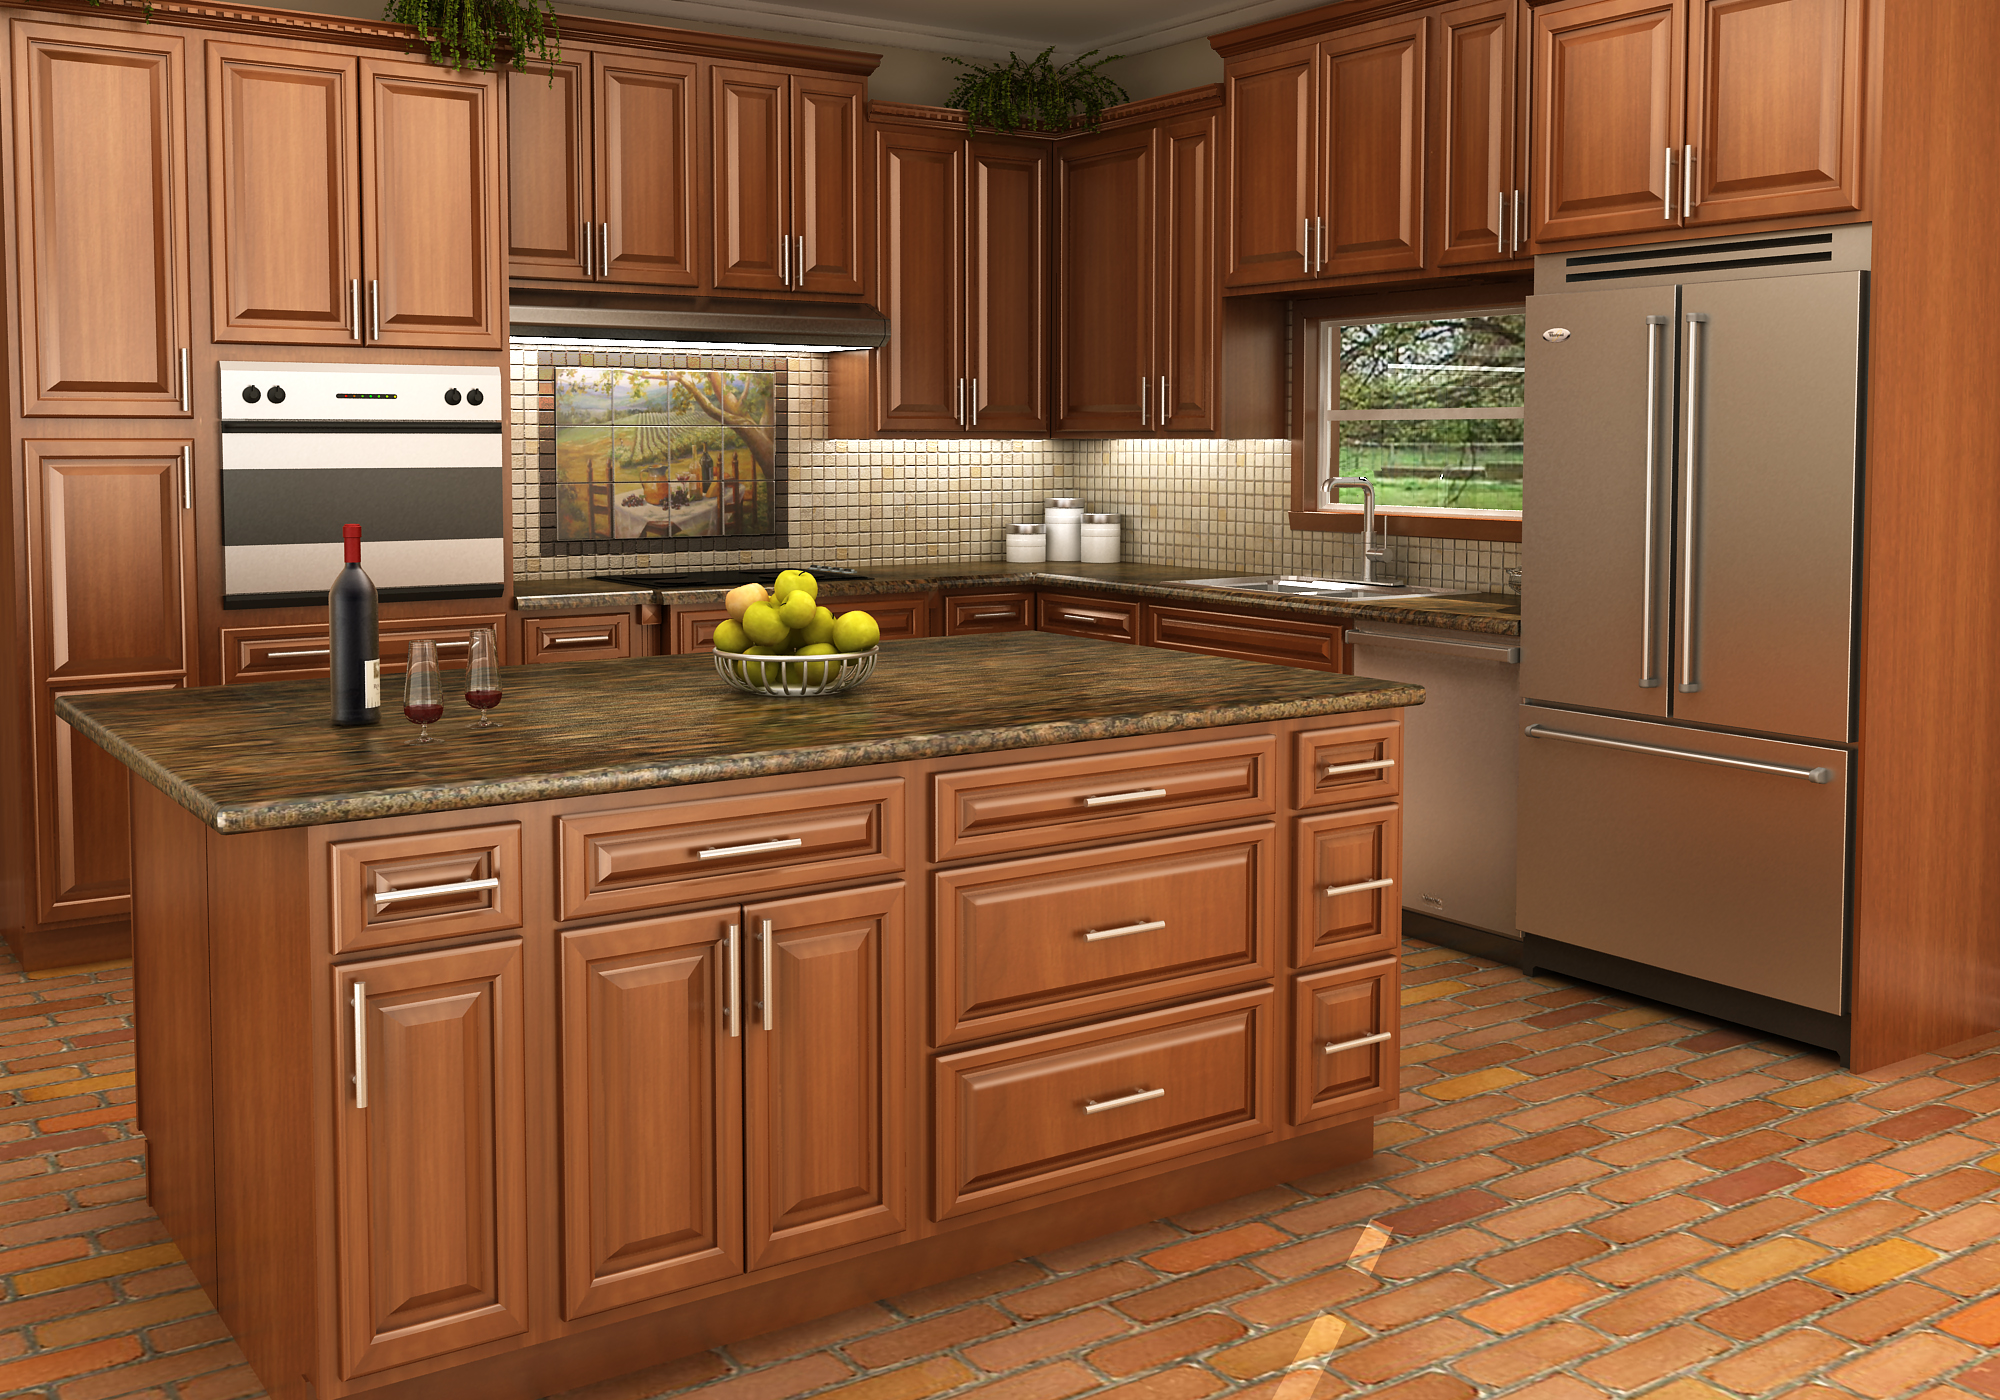 Kitchen Cabinet Making Plans Maple Cabinets Inspiratios Reeds Custom Cabinets